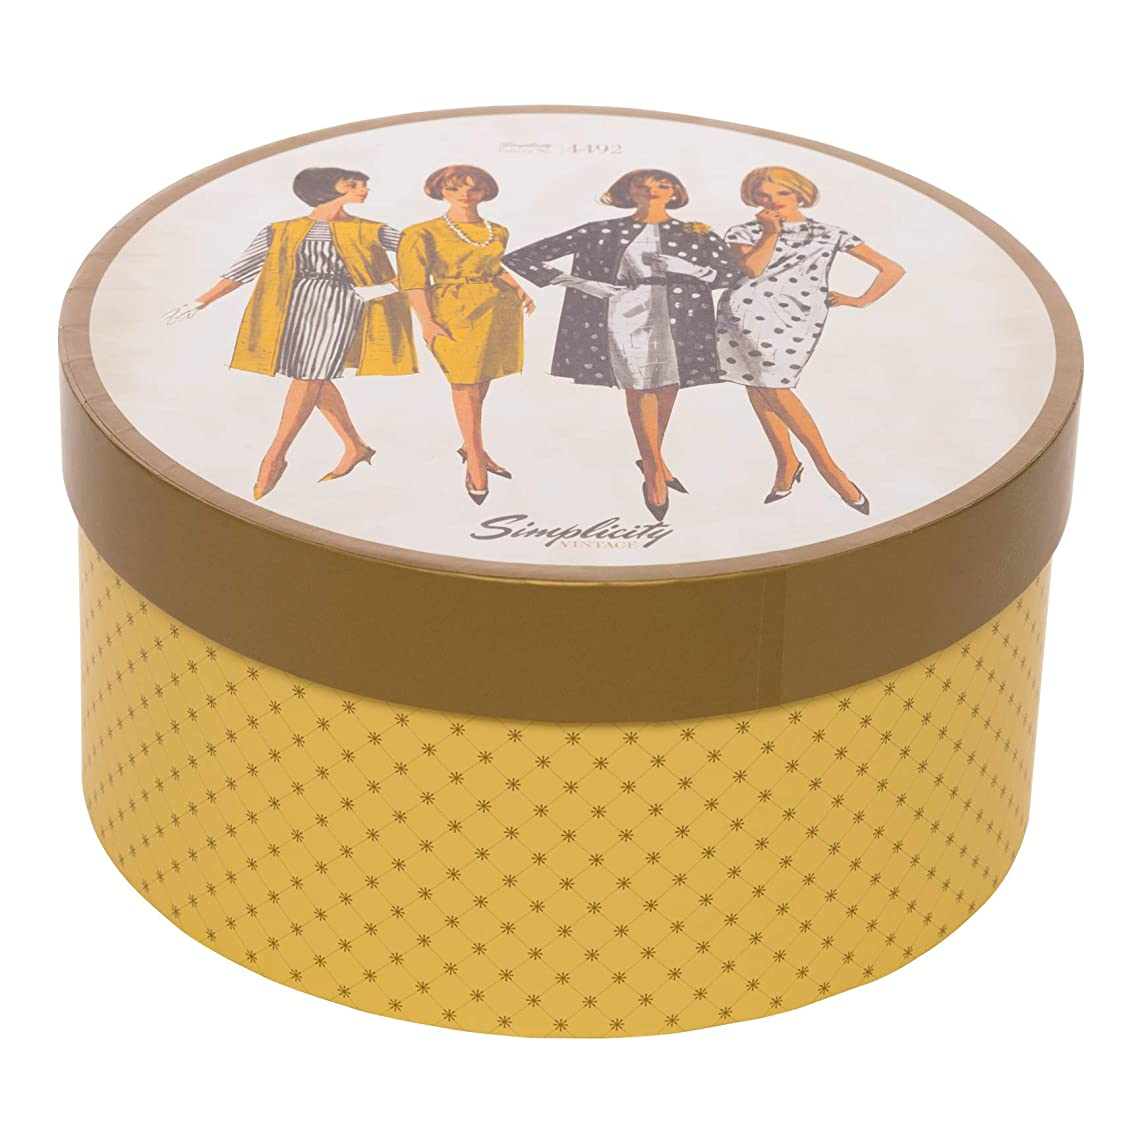 Simplicity Vintage Fashion 1960's Round Sewing Storage Box, 7.25'' W x 7.25'' L x 3.75'' H